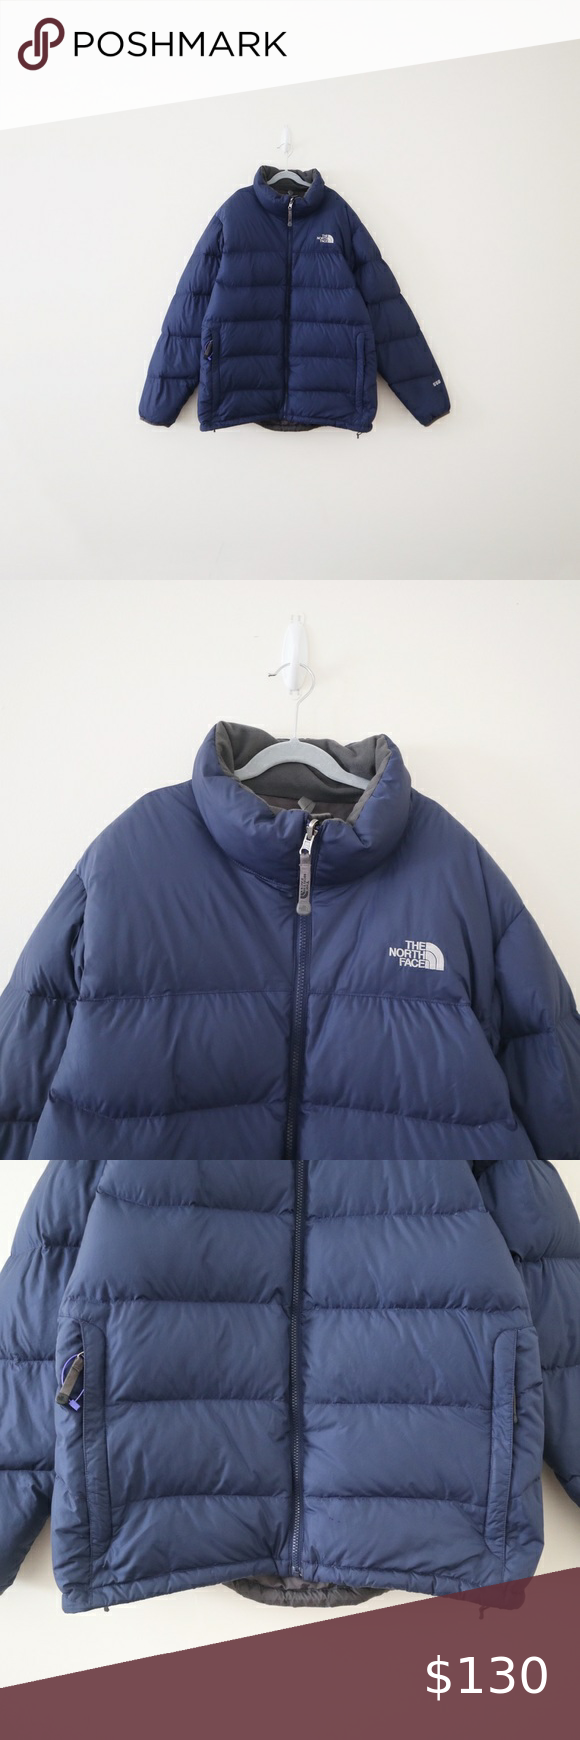 The North Face Down Puffer Jacket Coat 550 Navy Puffer Jackets The North Face Jackets [ 1740 x 580 Pixel ]